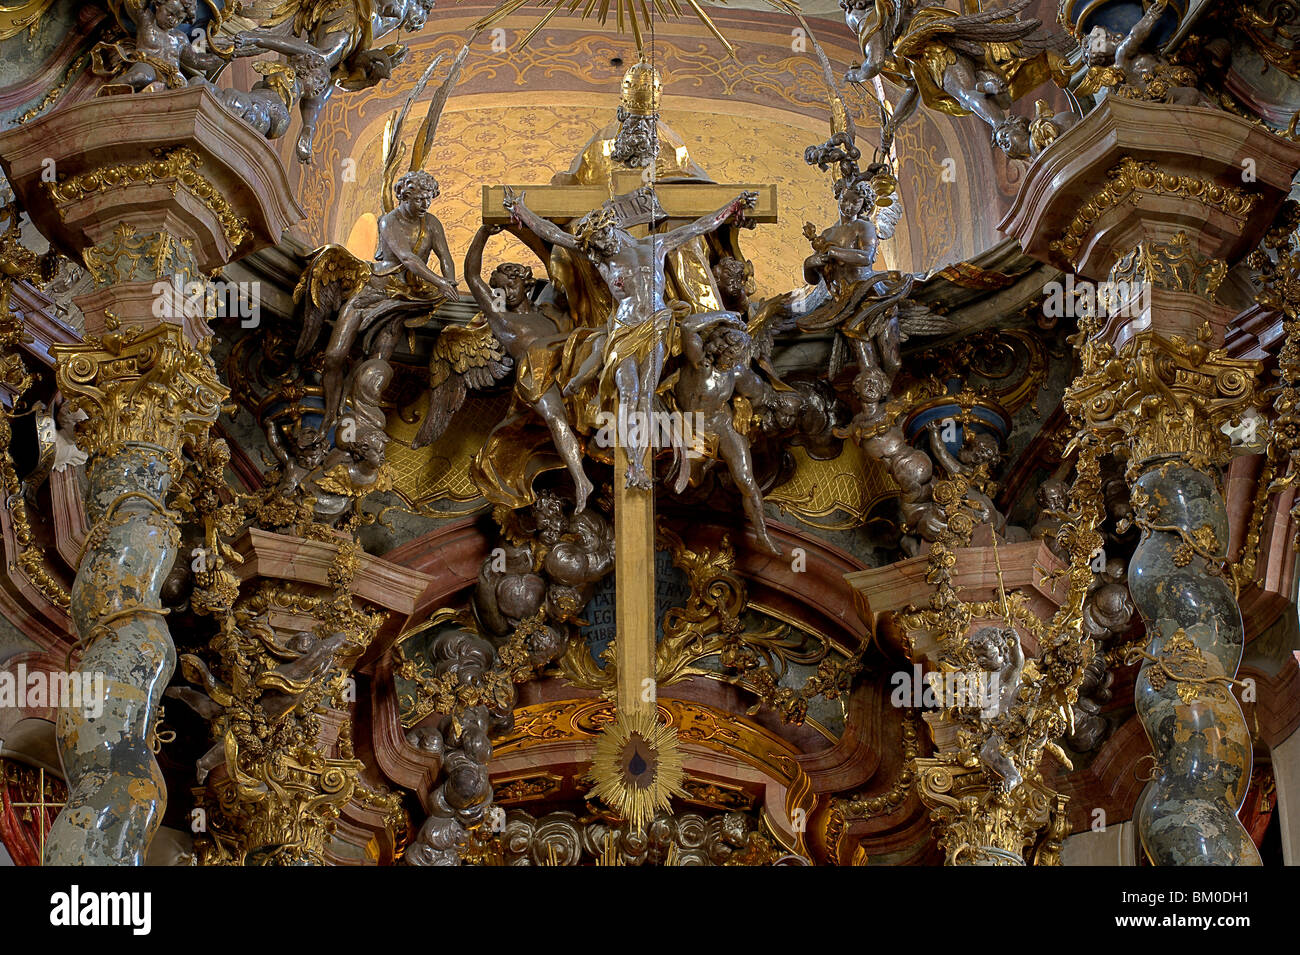 Interior view of the Asam church, Asamkirche, St. Johann Nepomuk was build in 1733–1746 by the Asam brothers Asam, - Stock Image